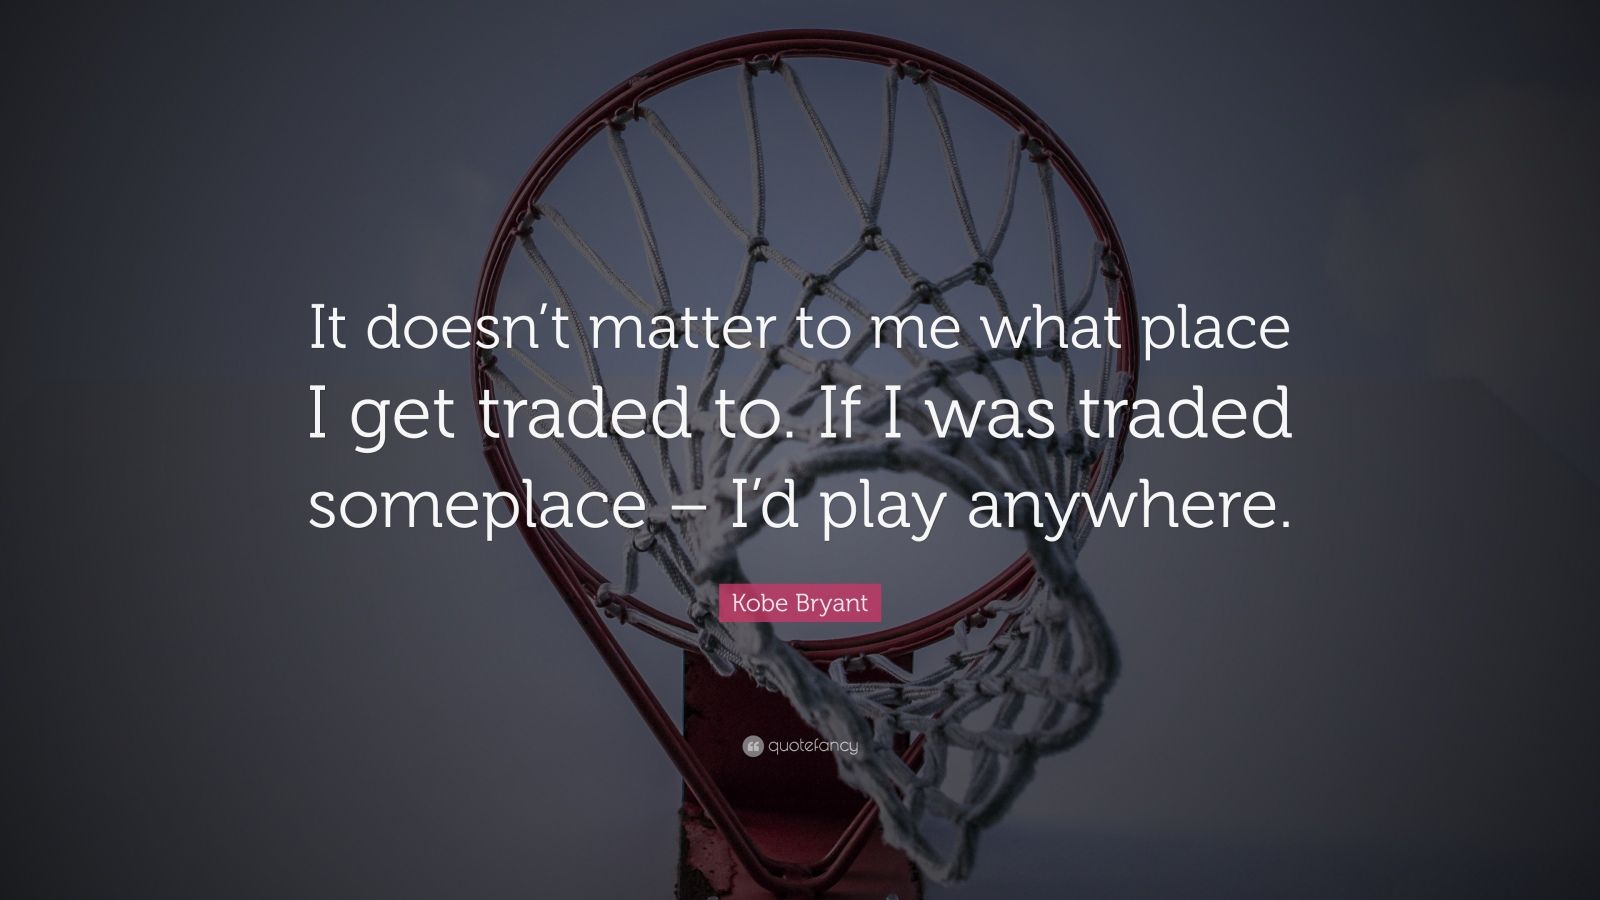 """Kobe Bryant Quote: """"It doesn't matter to me what place I get traded to. If I was traded someplace – I'd play anywhere."""""""